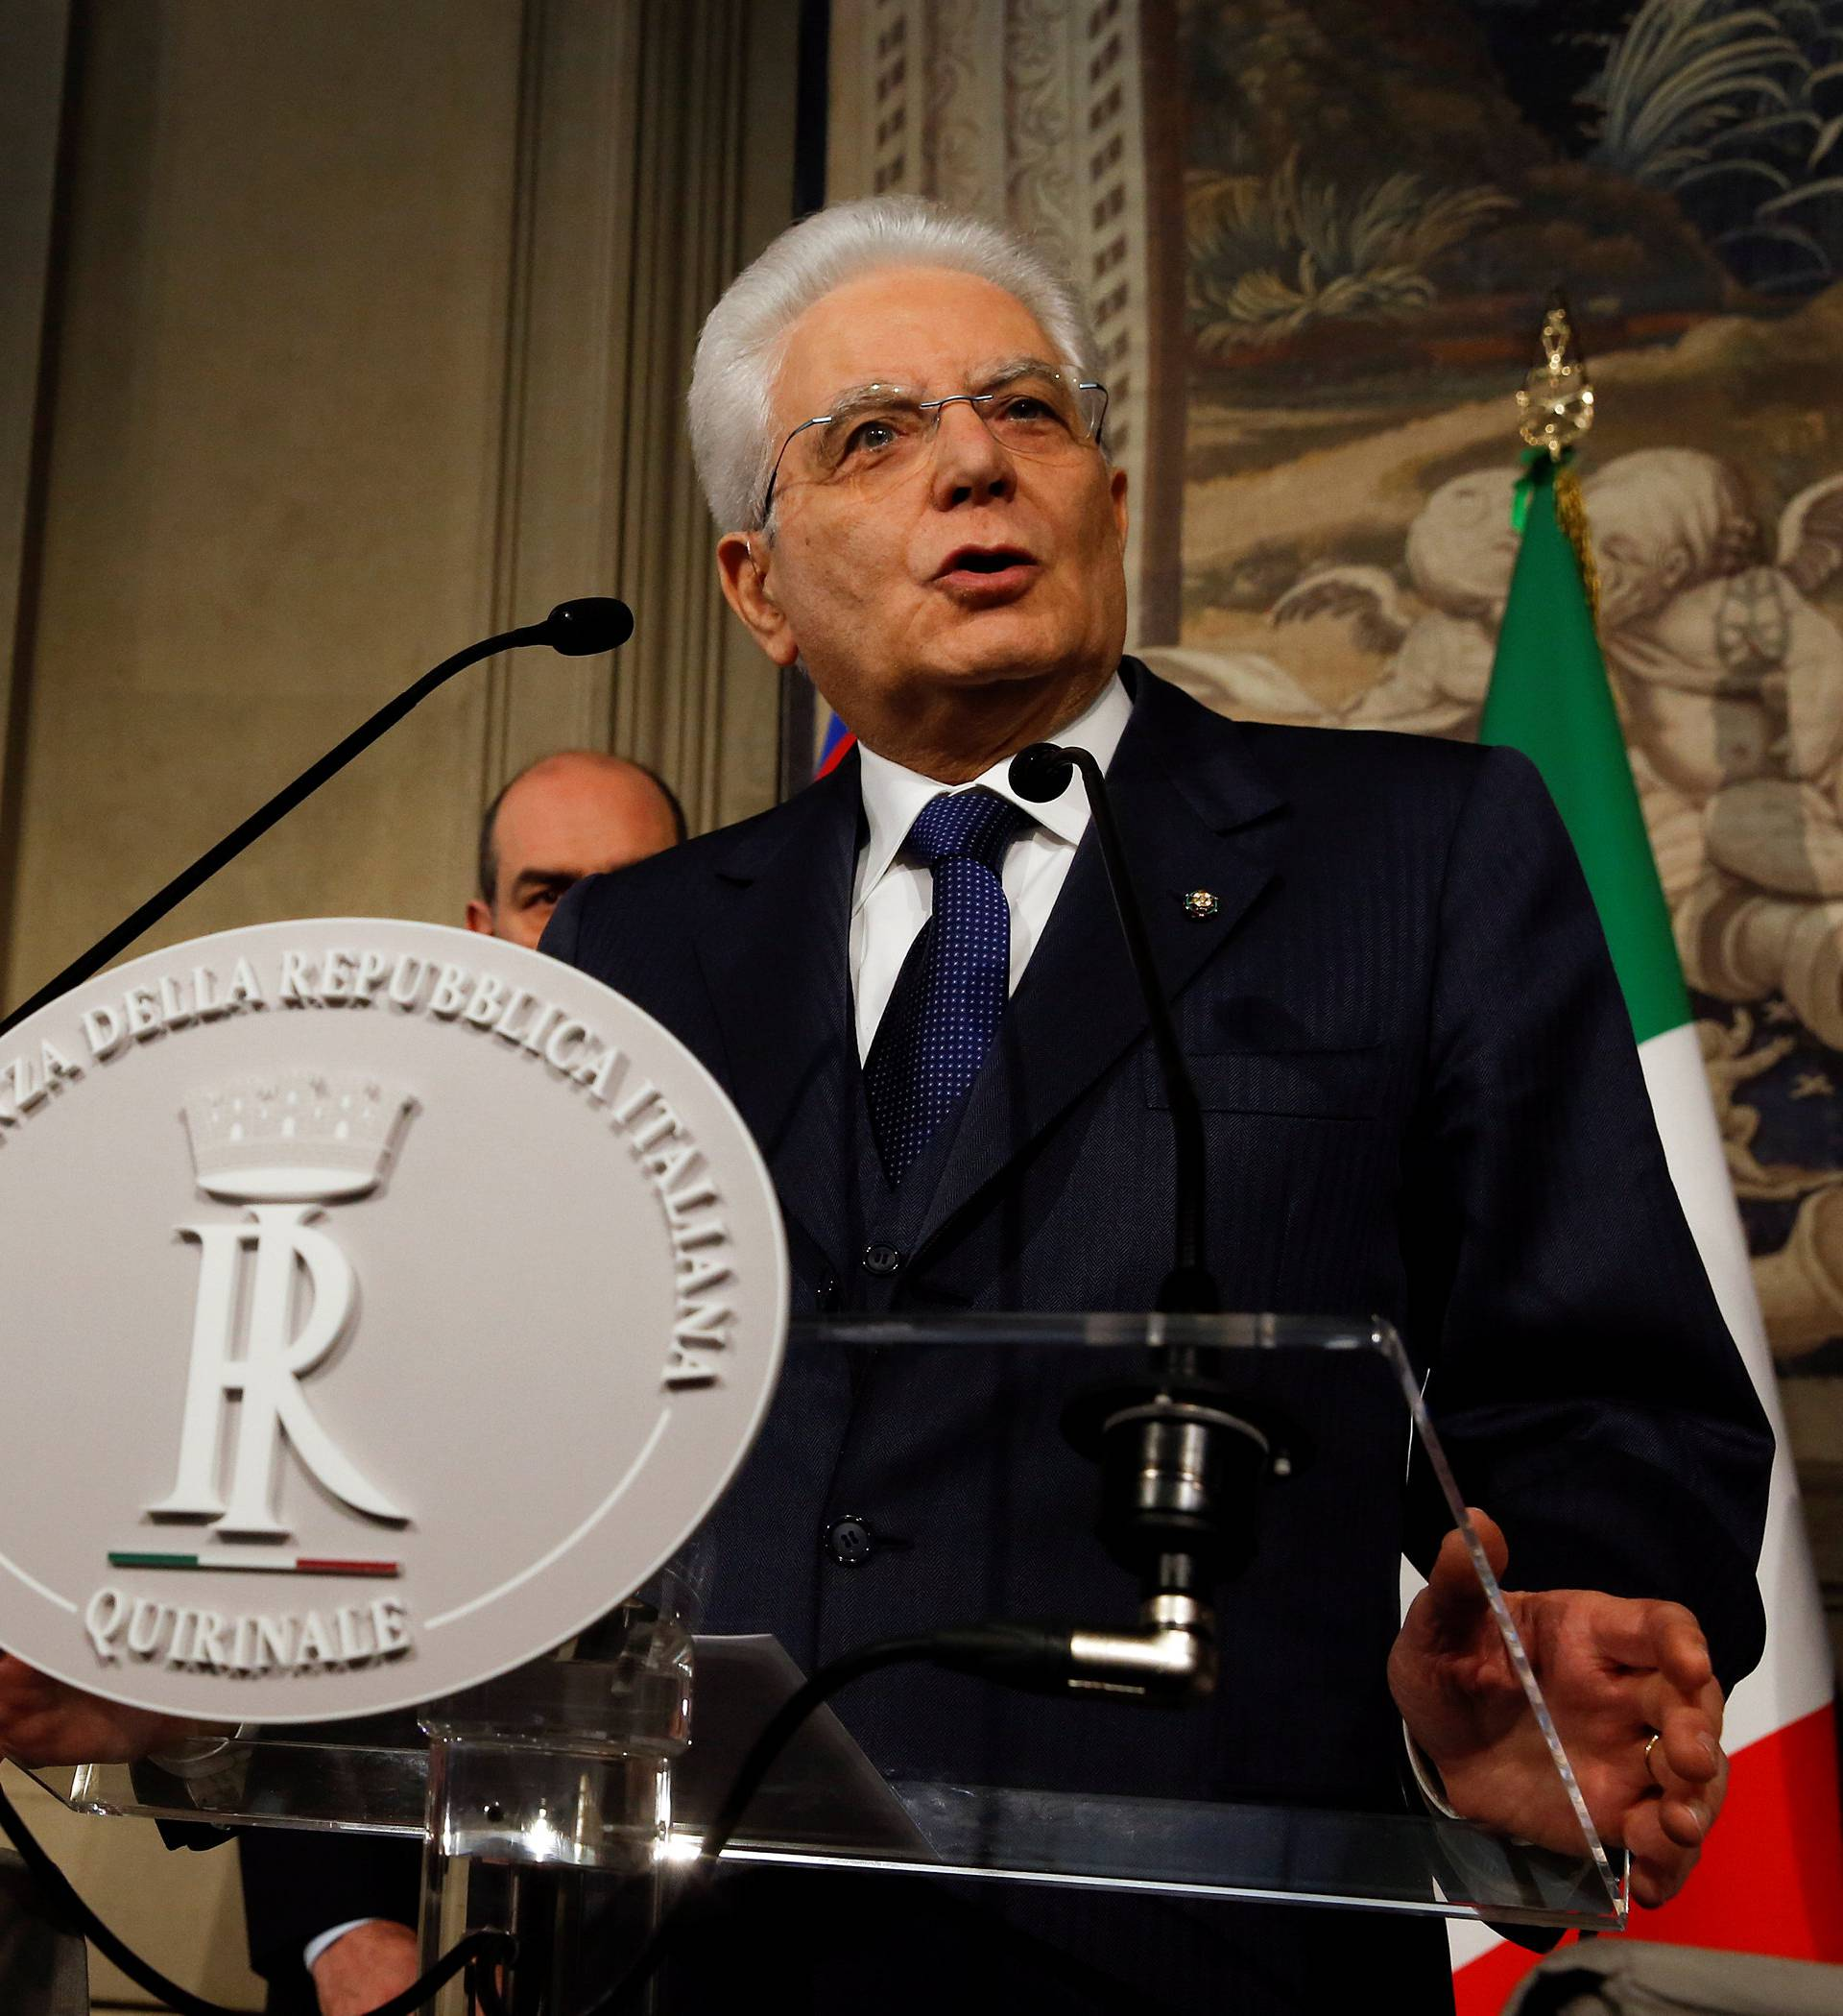 Italian President Sergio Mattarella speaks to the media during the second day of consultations at the Quirinal Palace in Rome